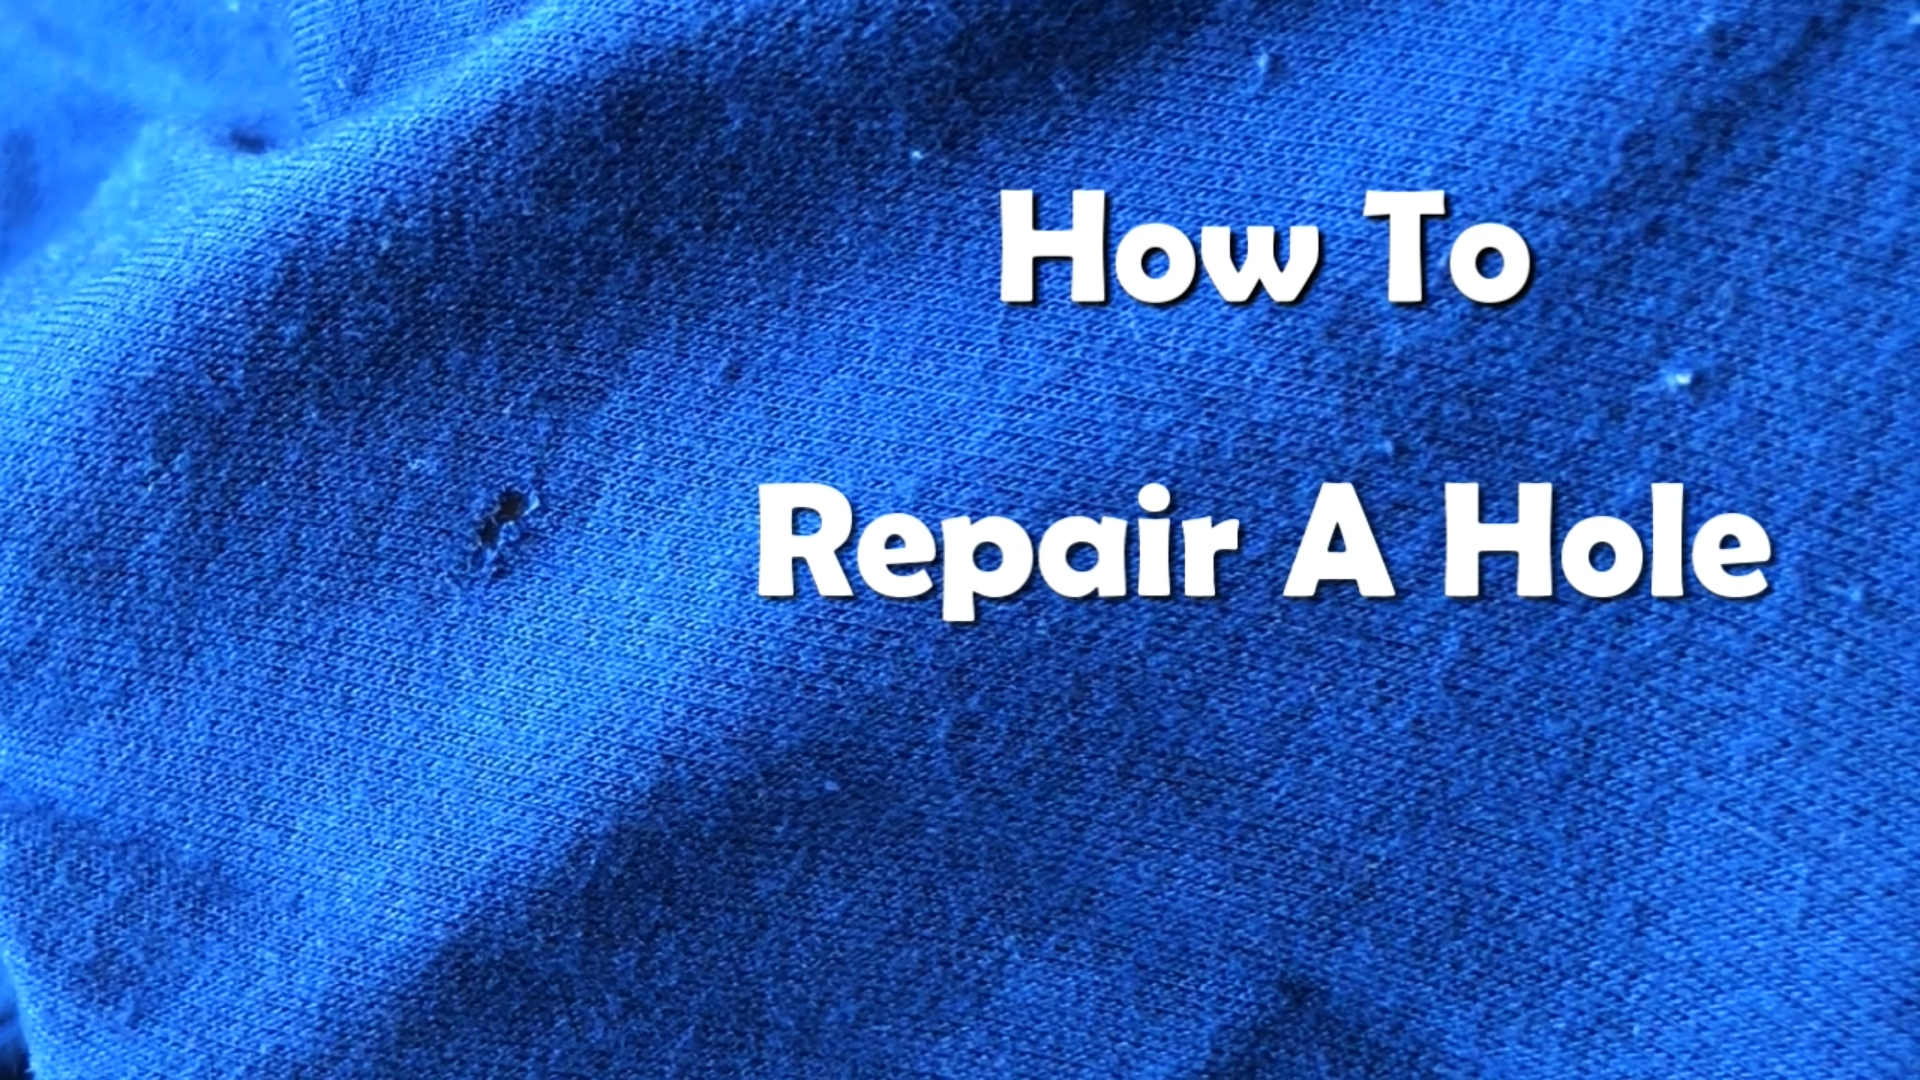 How To Repair a Hole